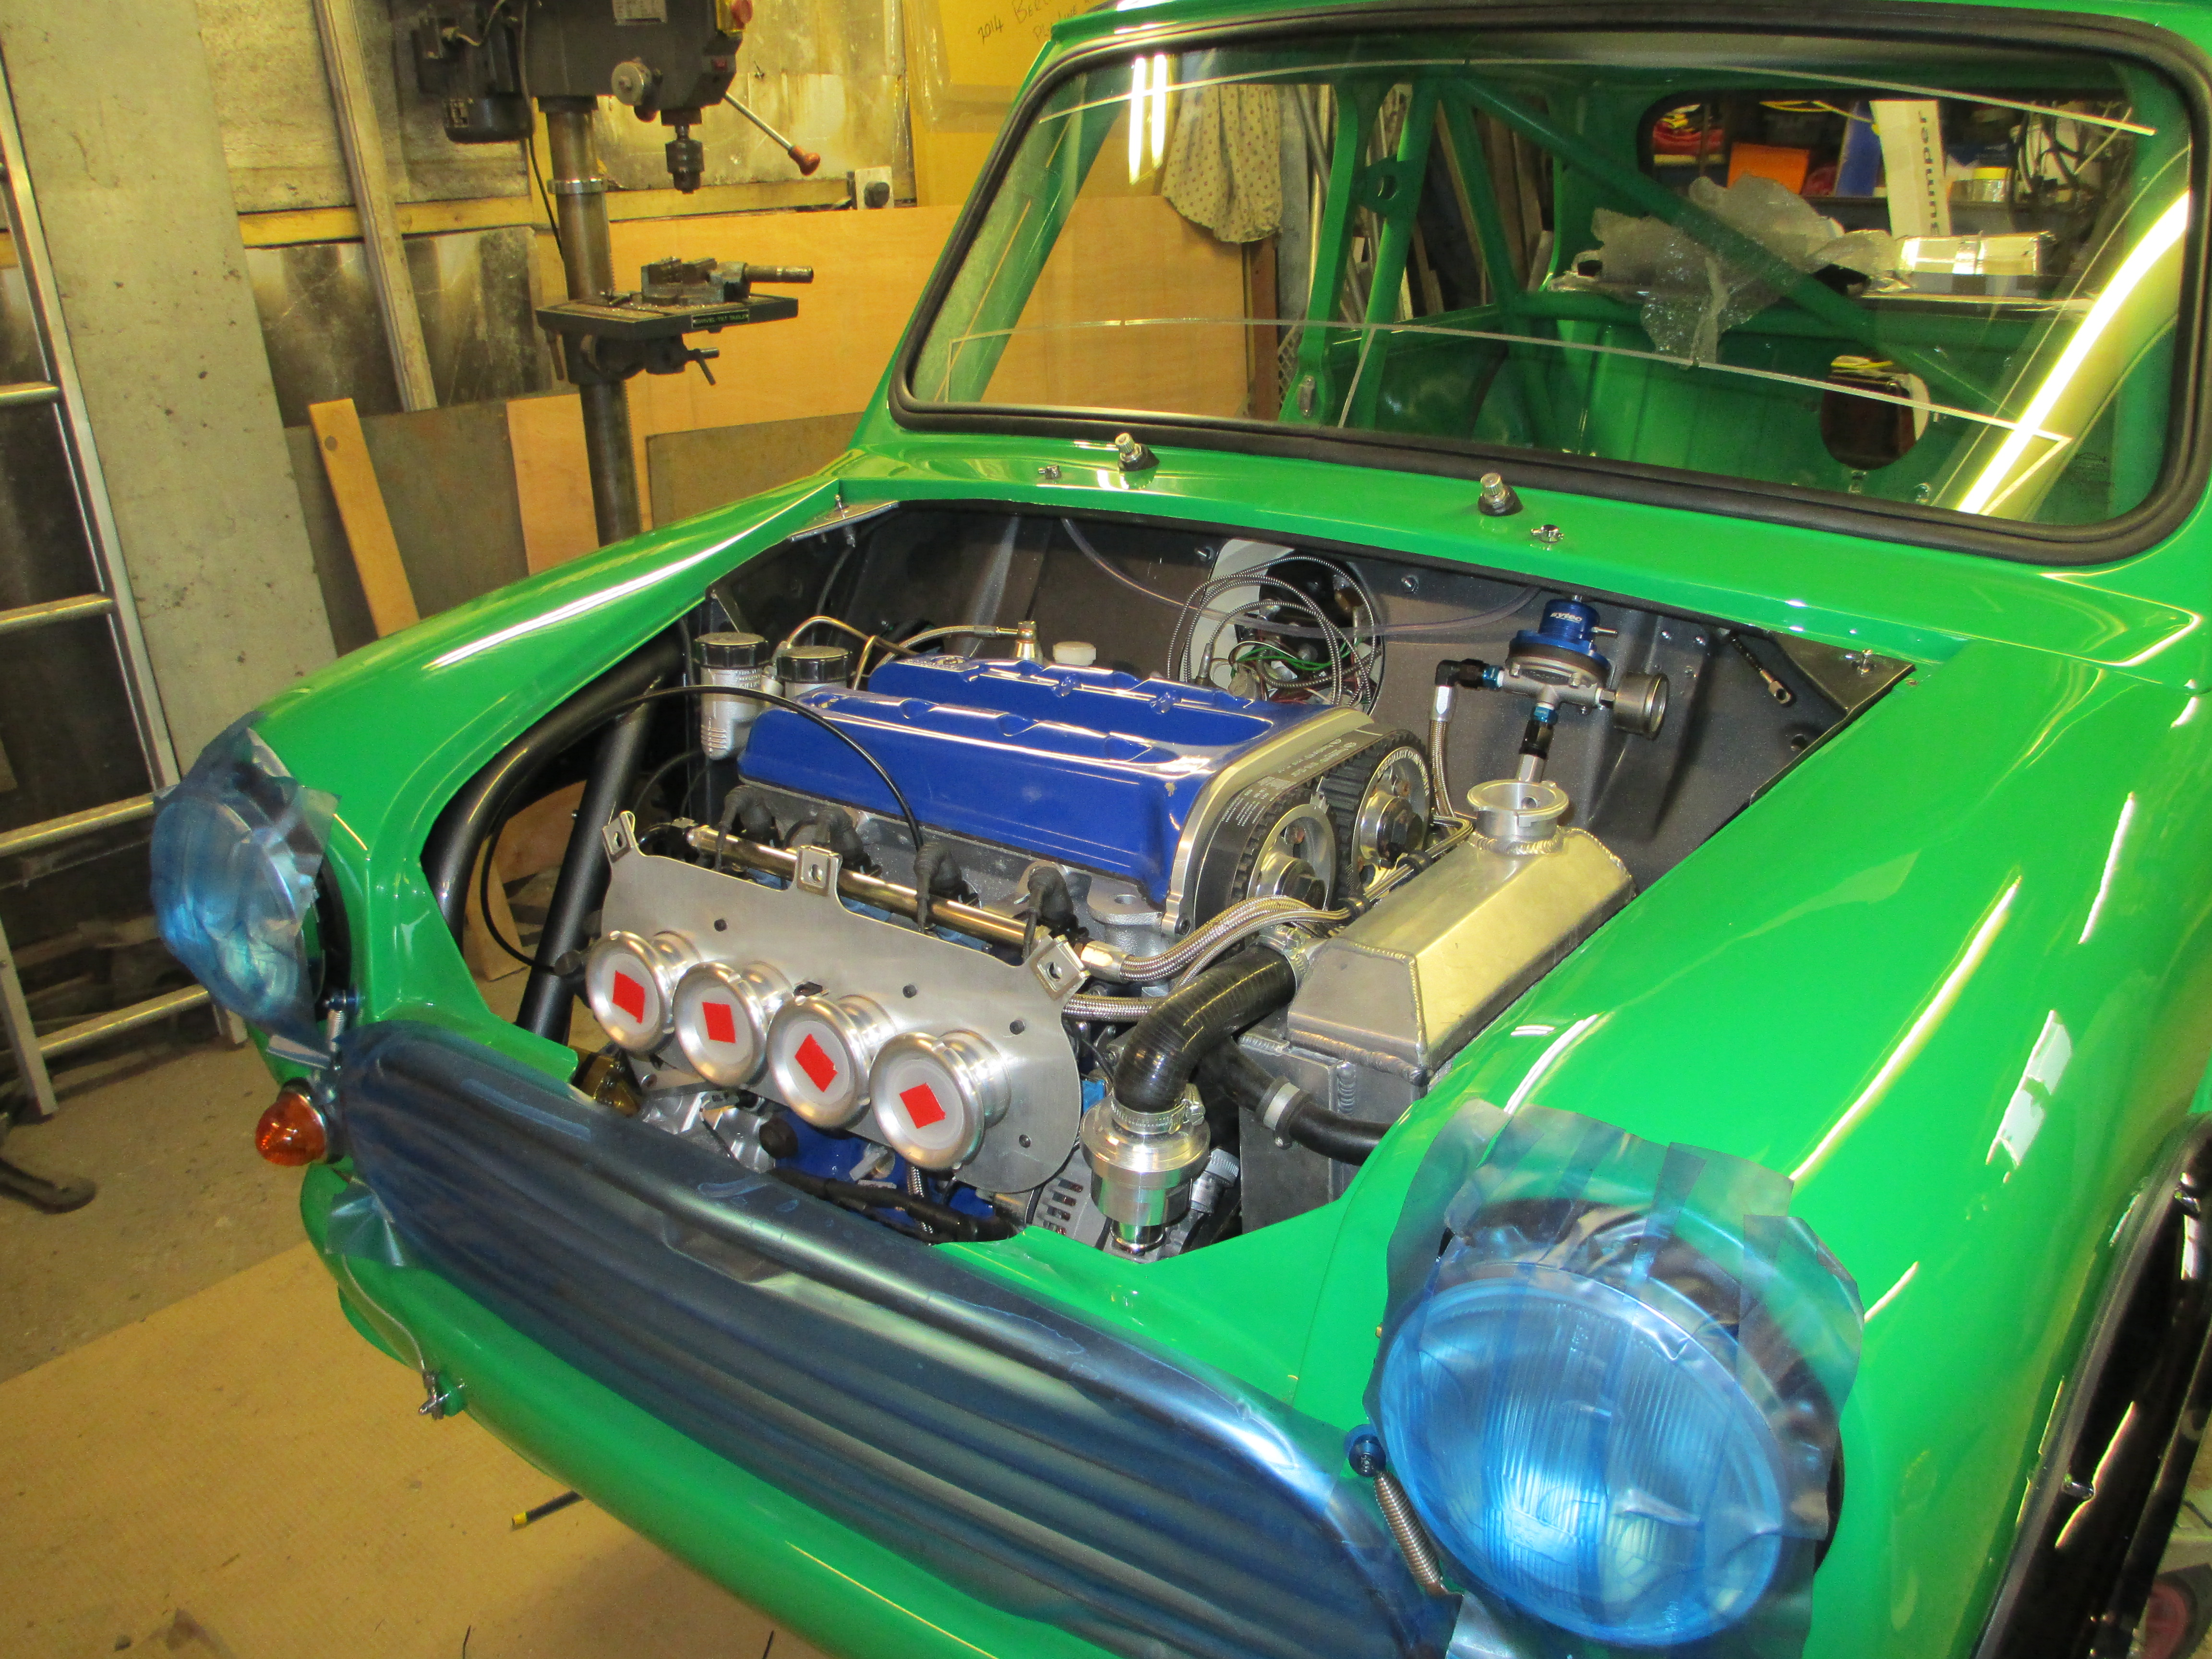 Kevin S's beast's engine